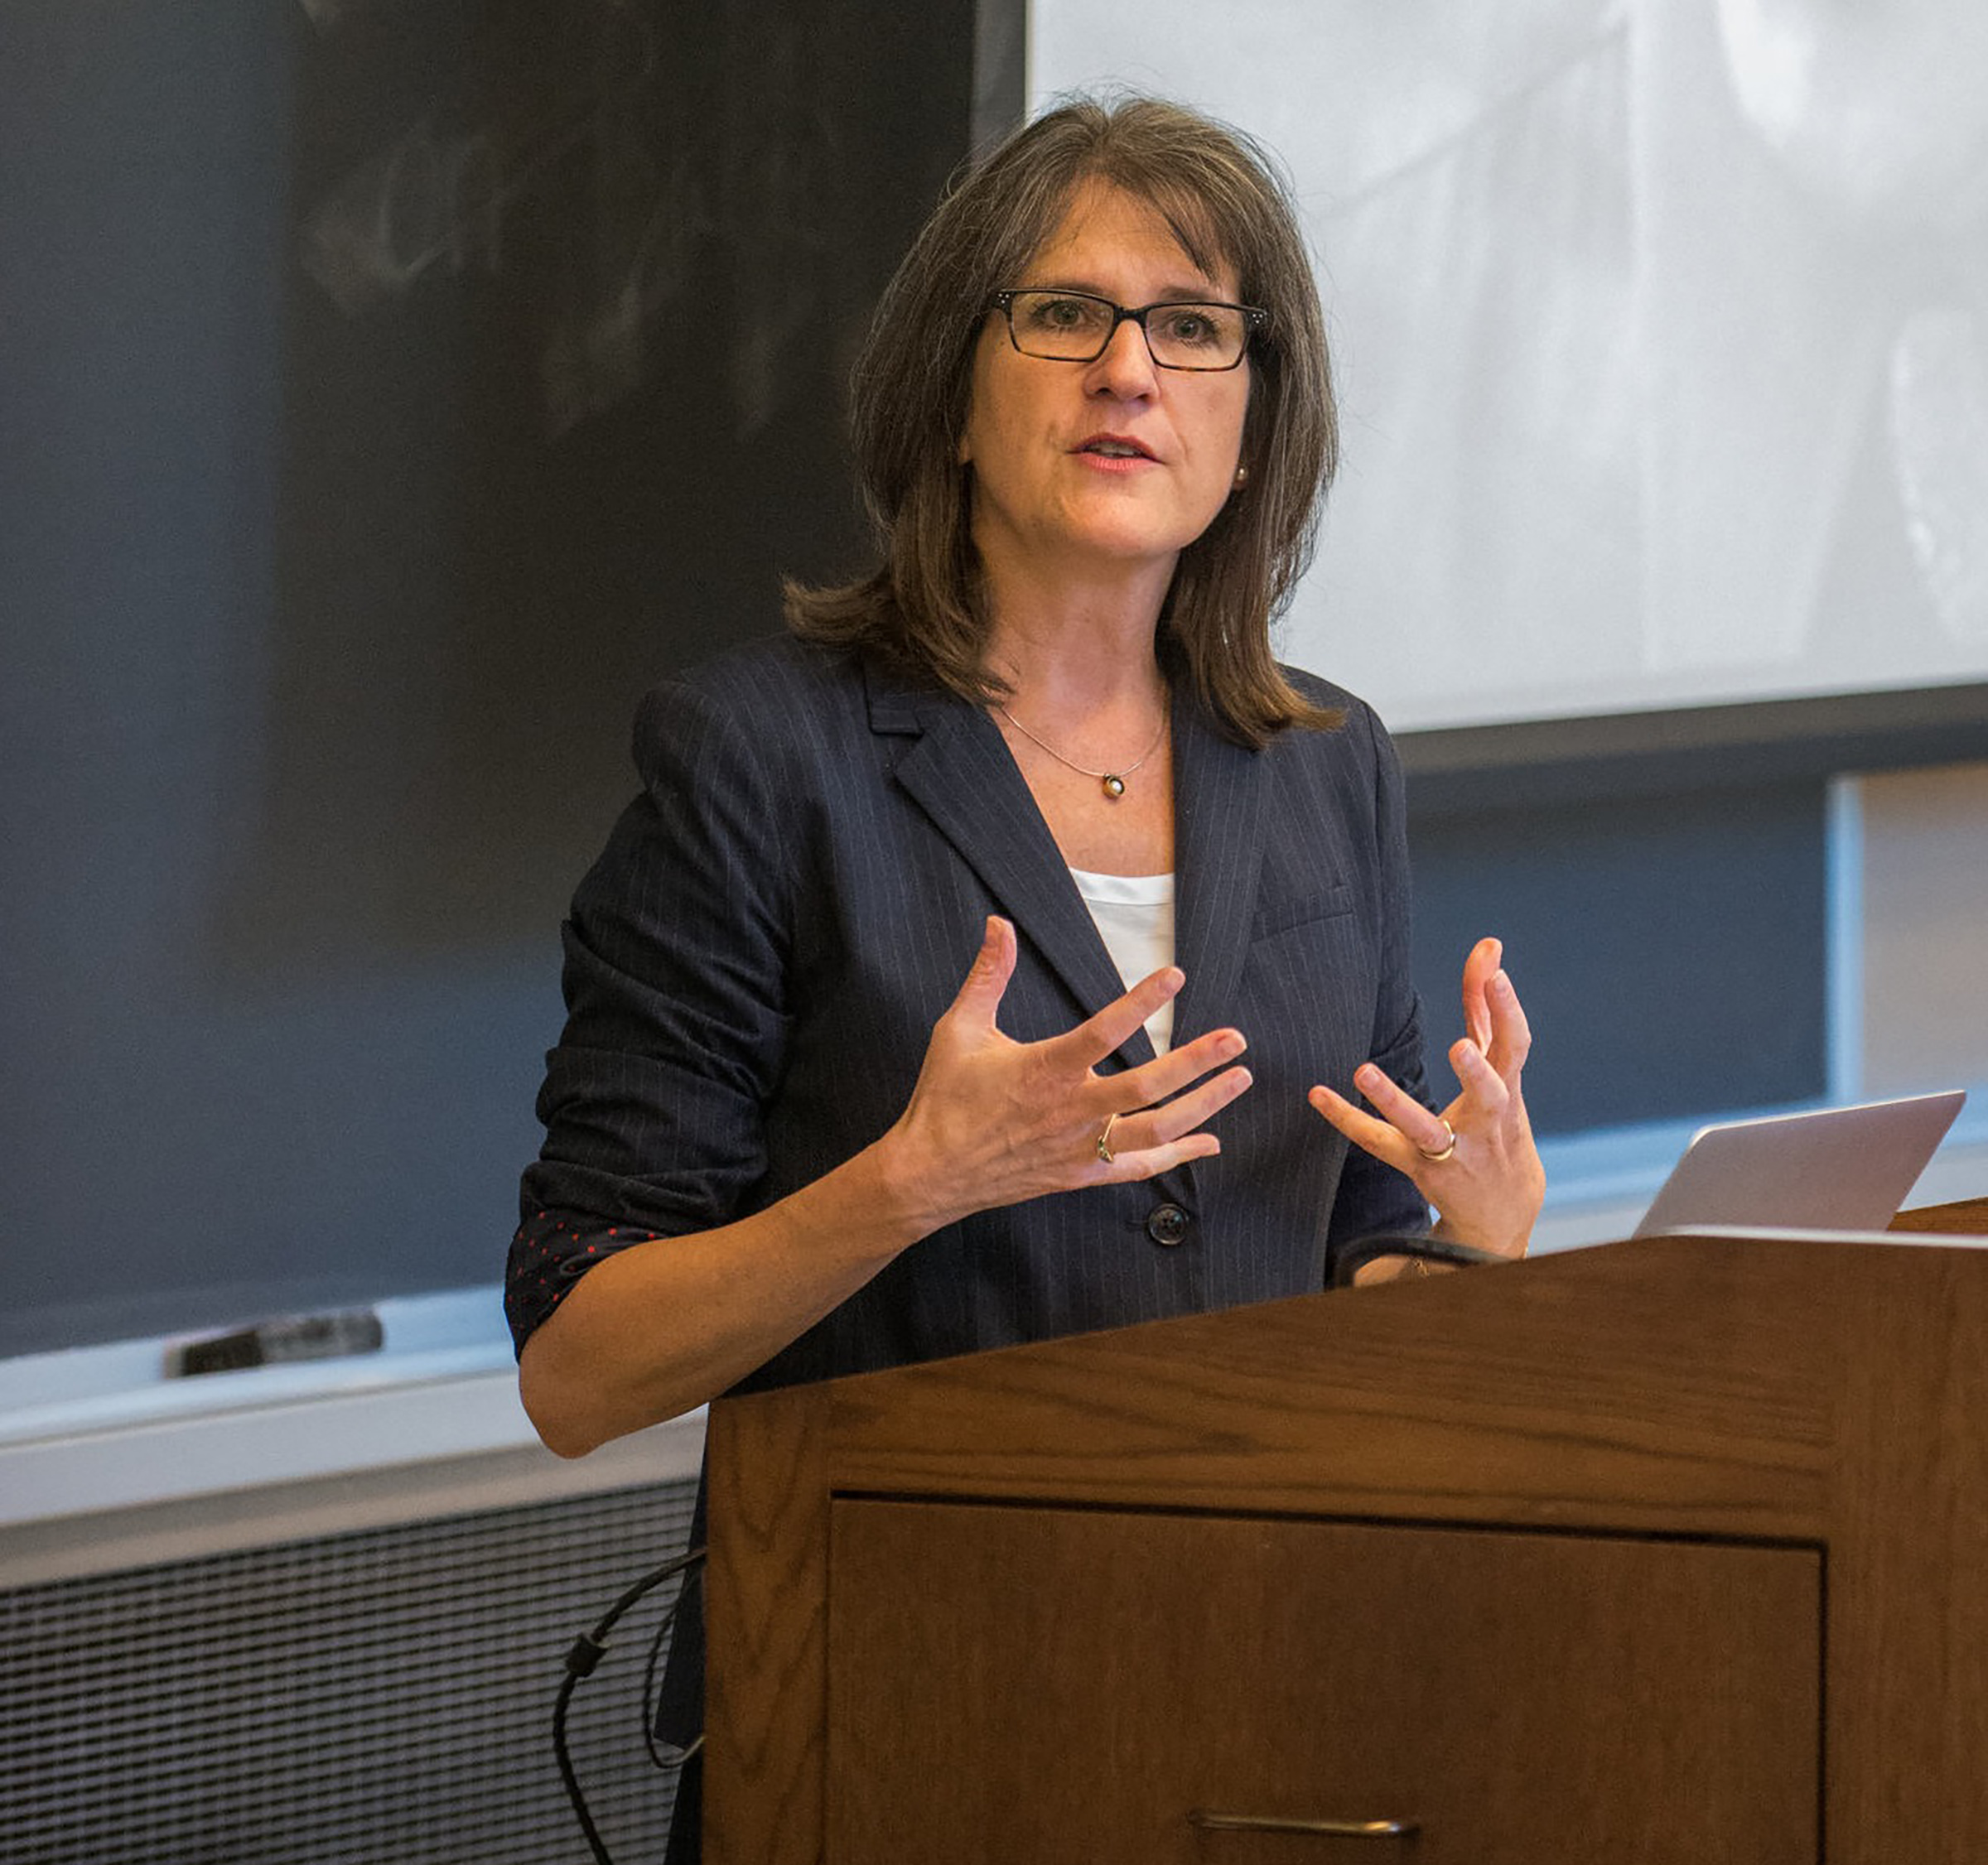 Dianne Harris has been named the dean of the College of Humanities at the University of Utah